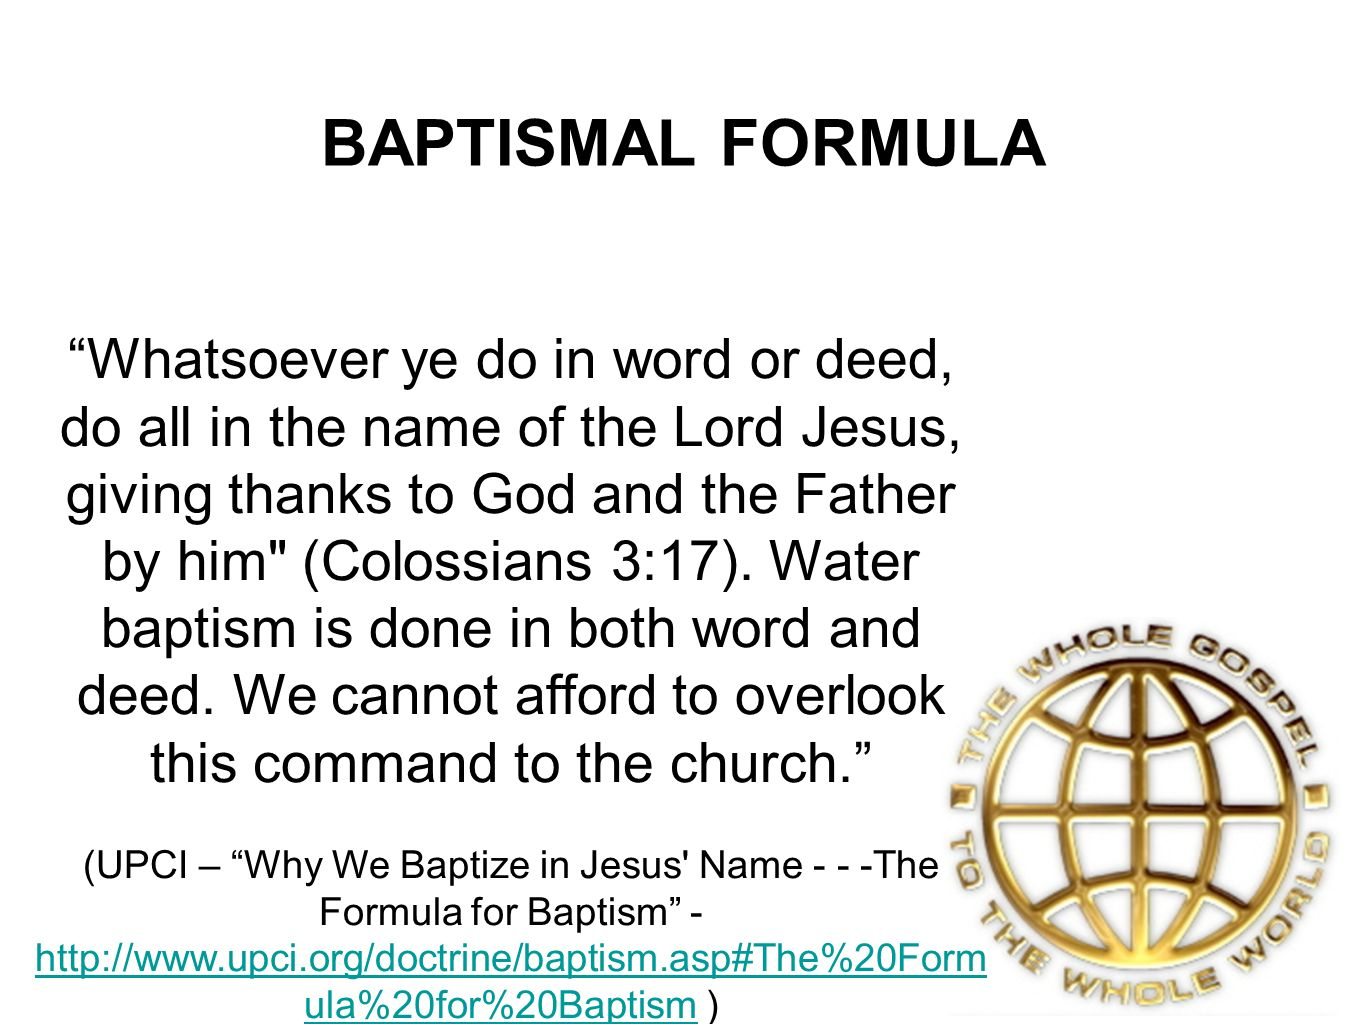 BAPTISMAL FORMULA Whatsoever ye do in word or deed, do all in the name of the Lord Jesus, giving thanks to God and the Father by him (Colossians 3:17).